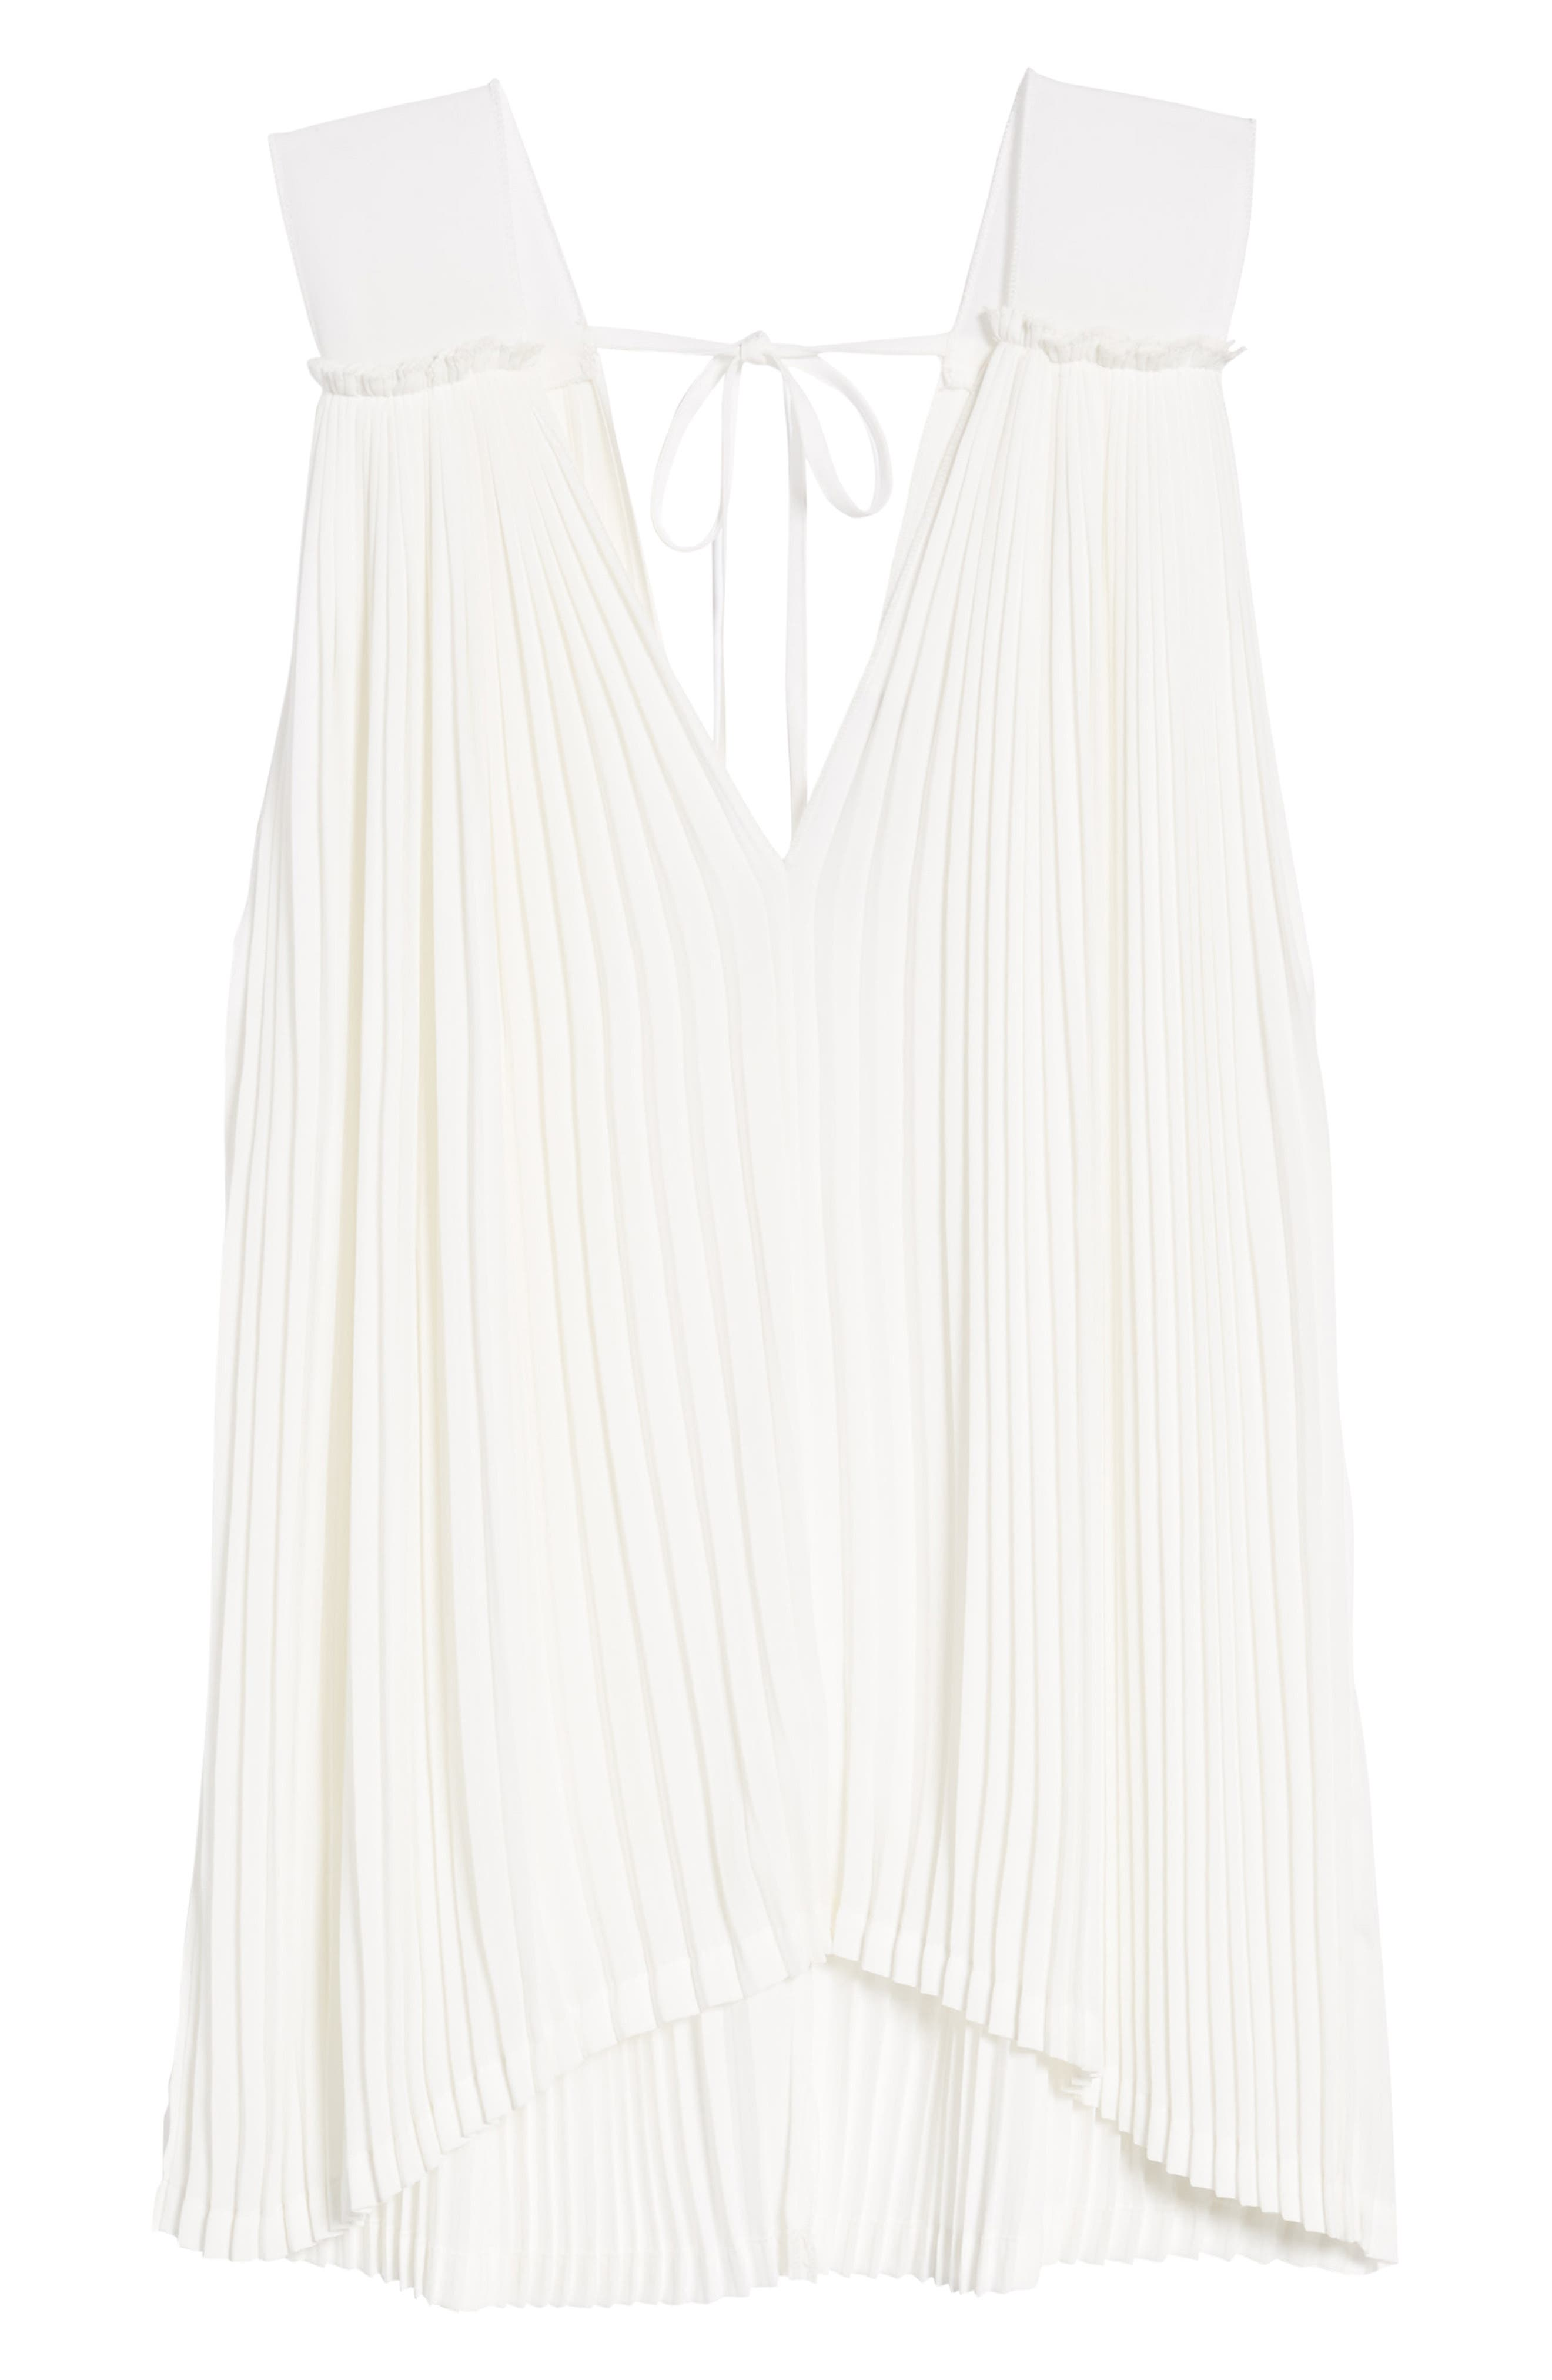 Bishop + Young Pleat Blouse,                             Alternate thumbnail 7, color,                             WHITE